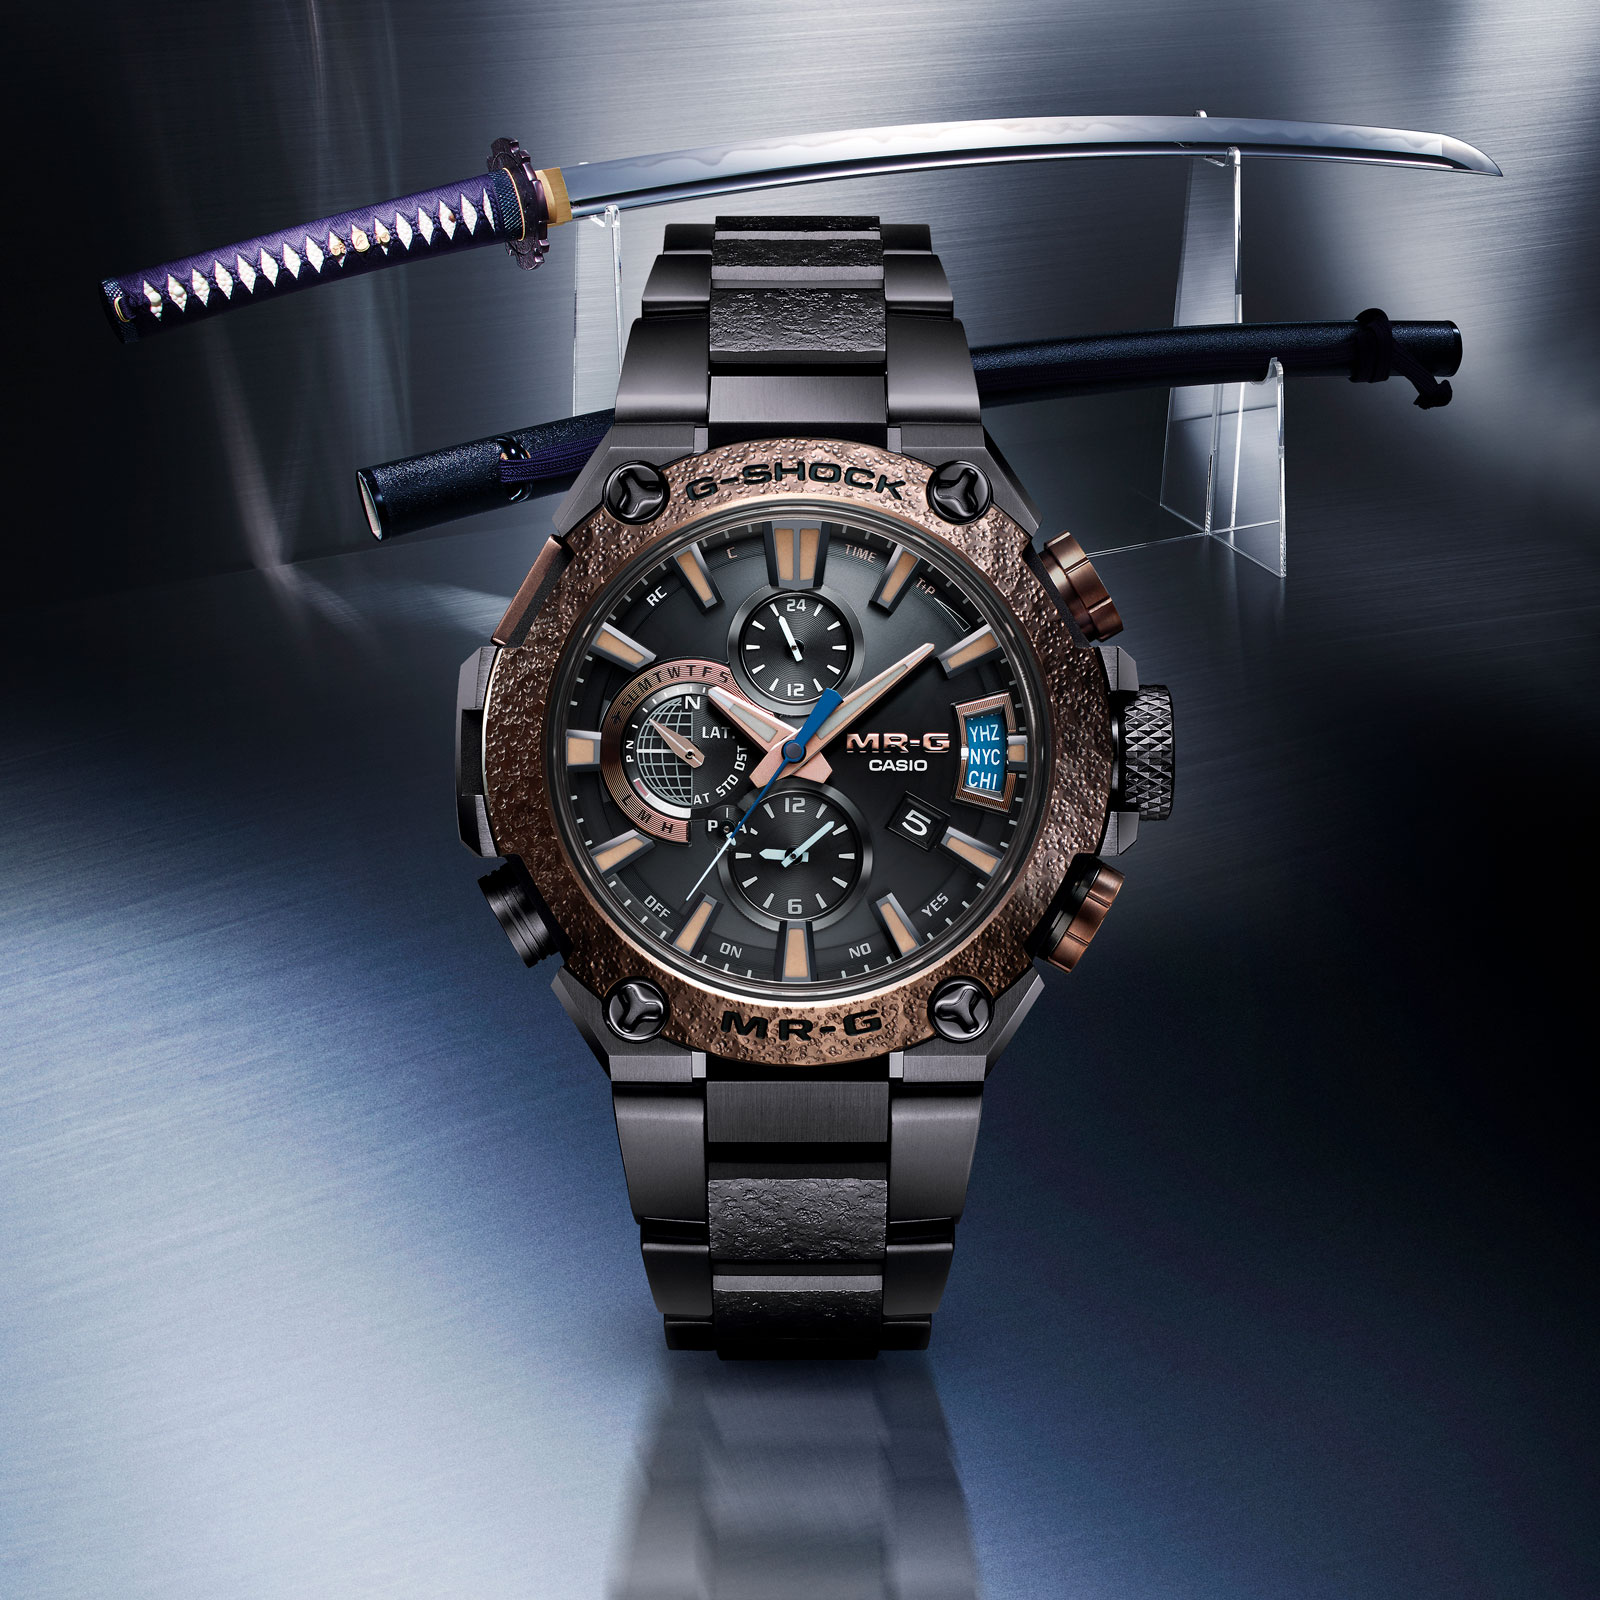 [Official] G-Shock MRG-G2000HA-1 — Special Edition Connected Timepiece